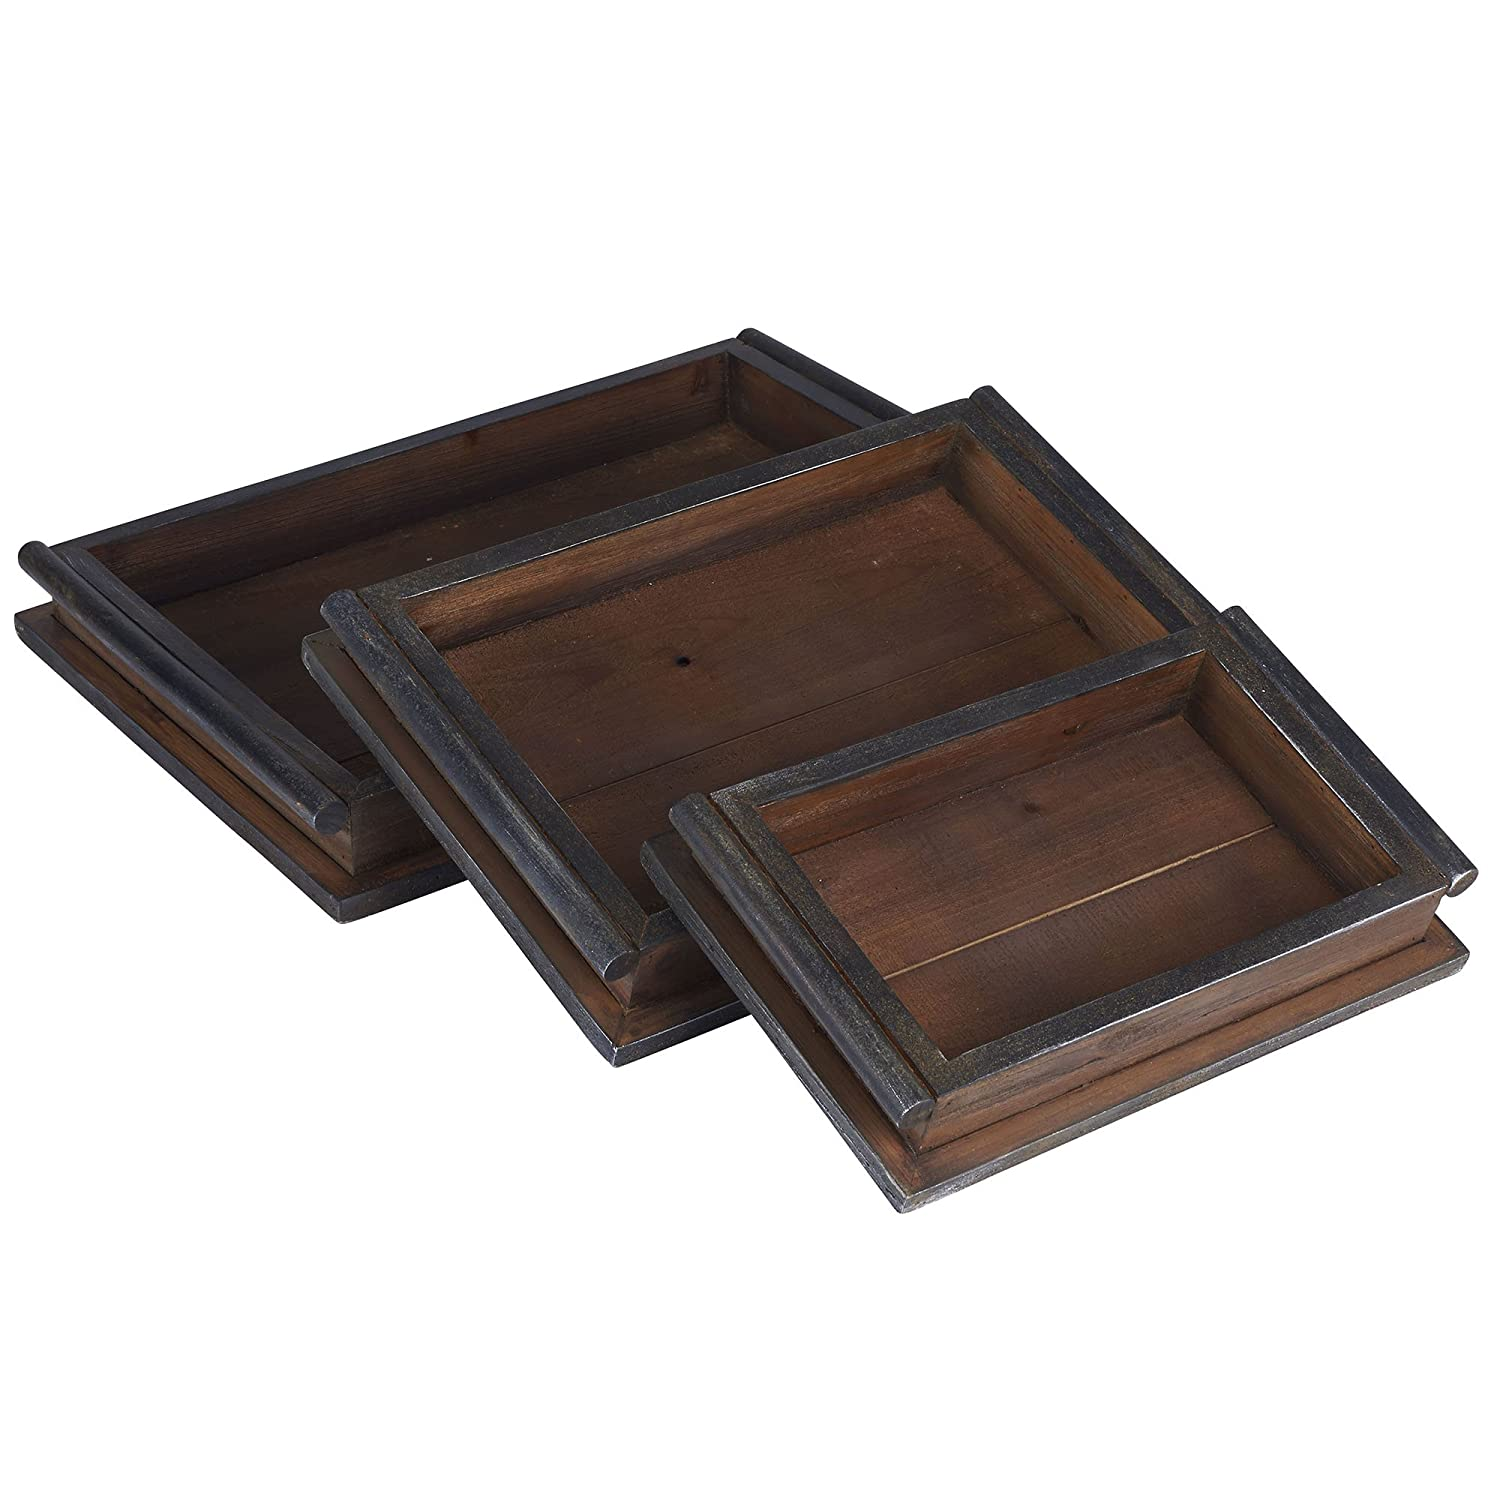 Household Essentials 9720-1 Rustic Wooden 3 Piece Decorative Trays